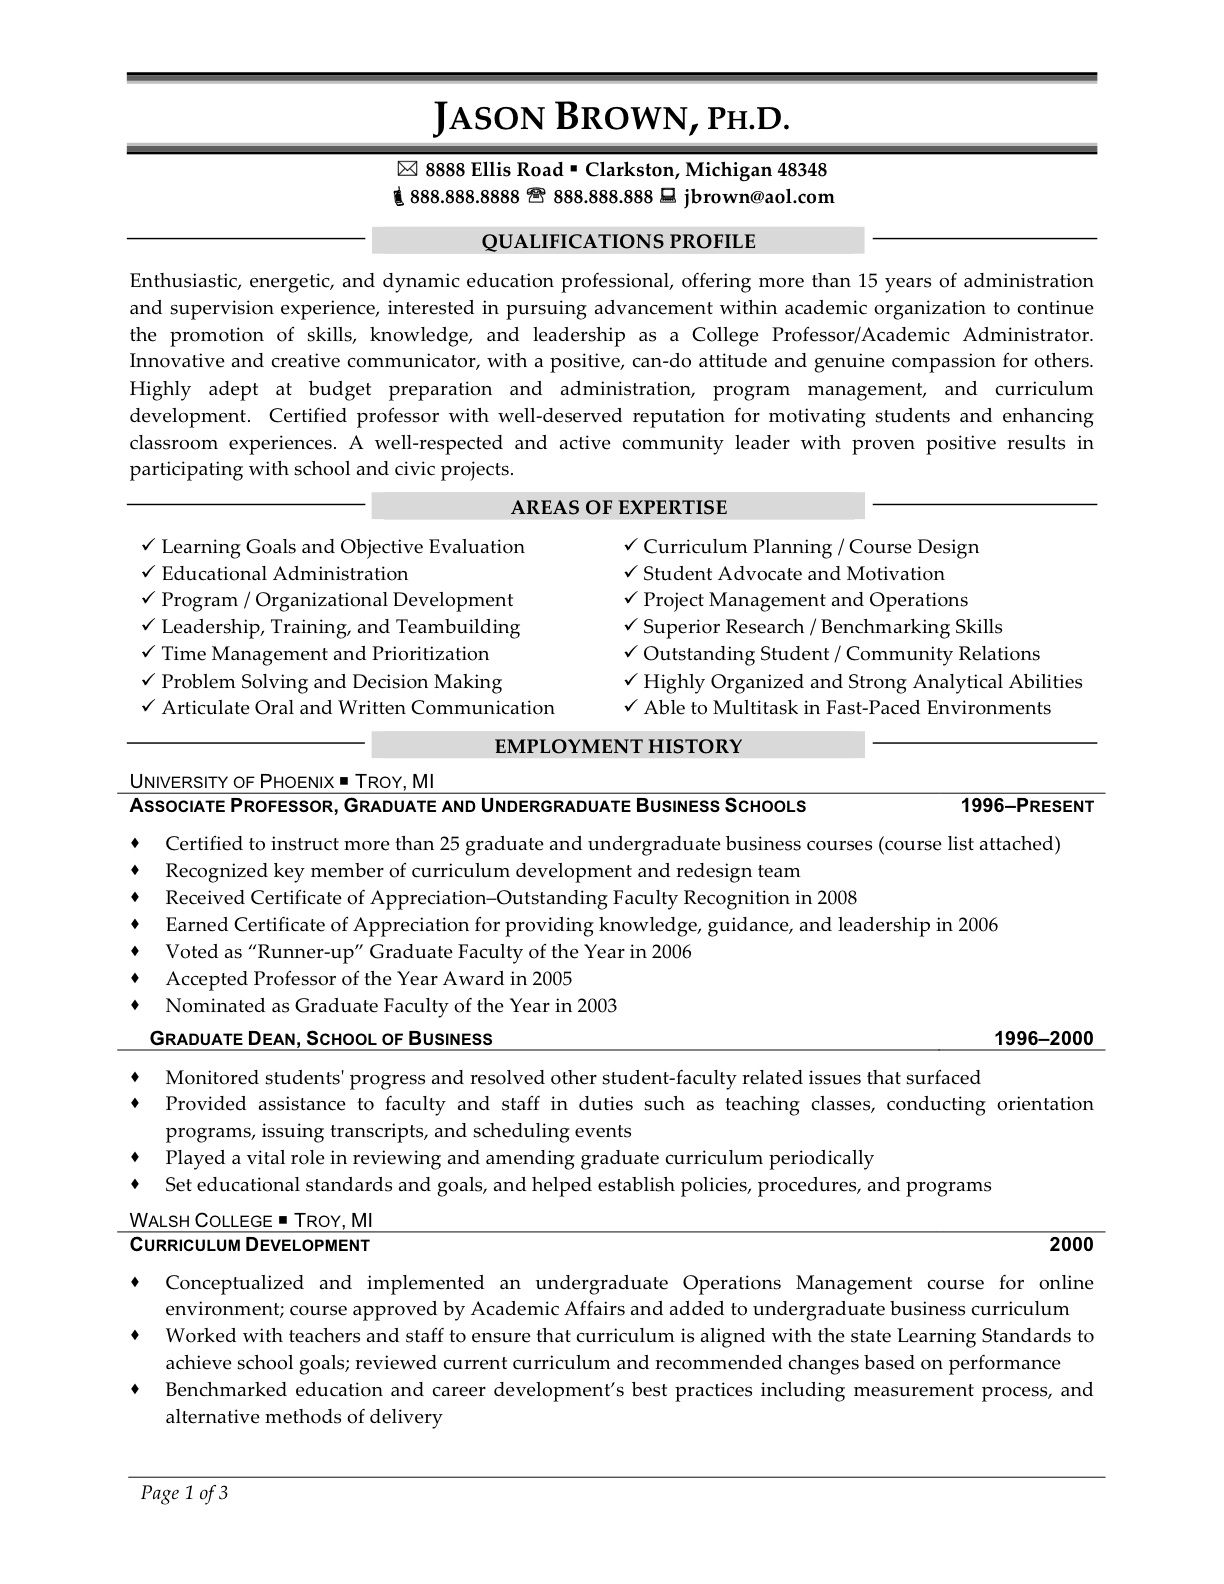 phd cv for industry jobs